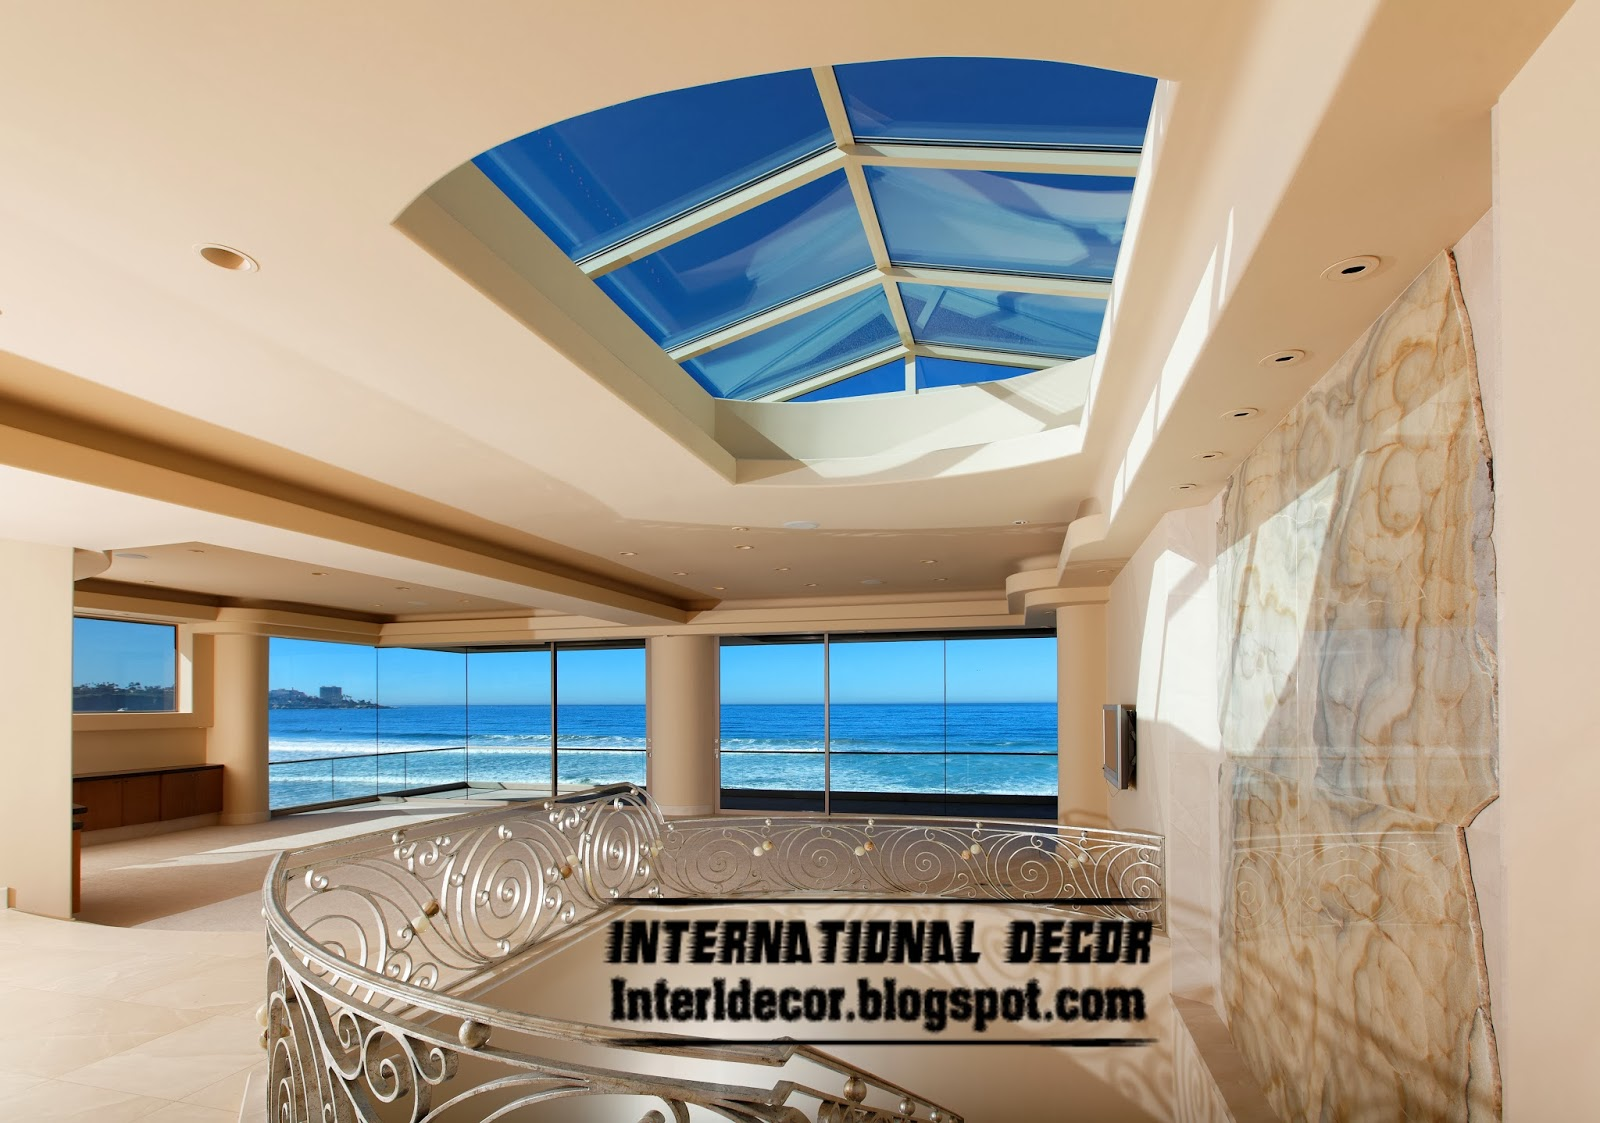 Skylight Designs For Homes Interior